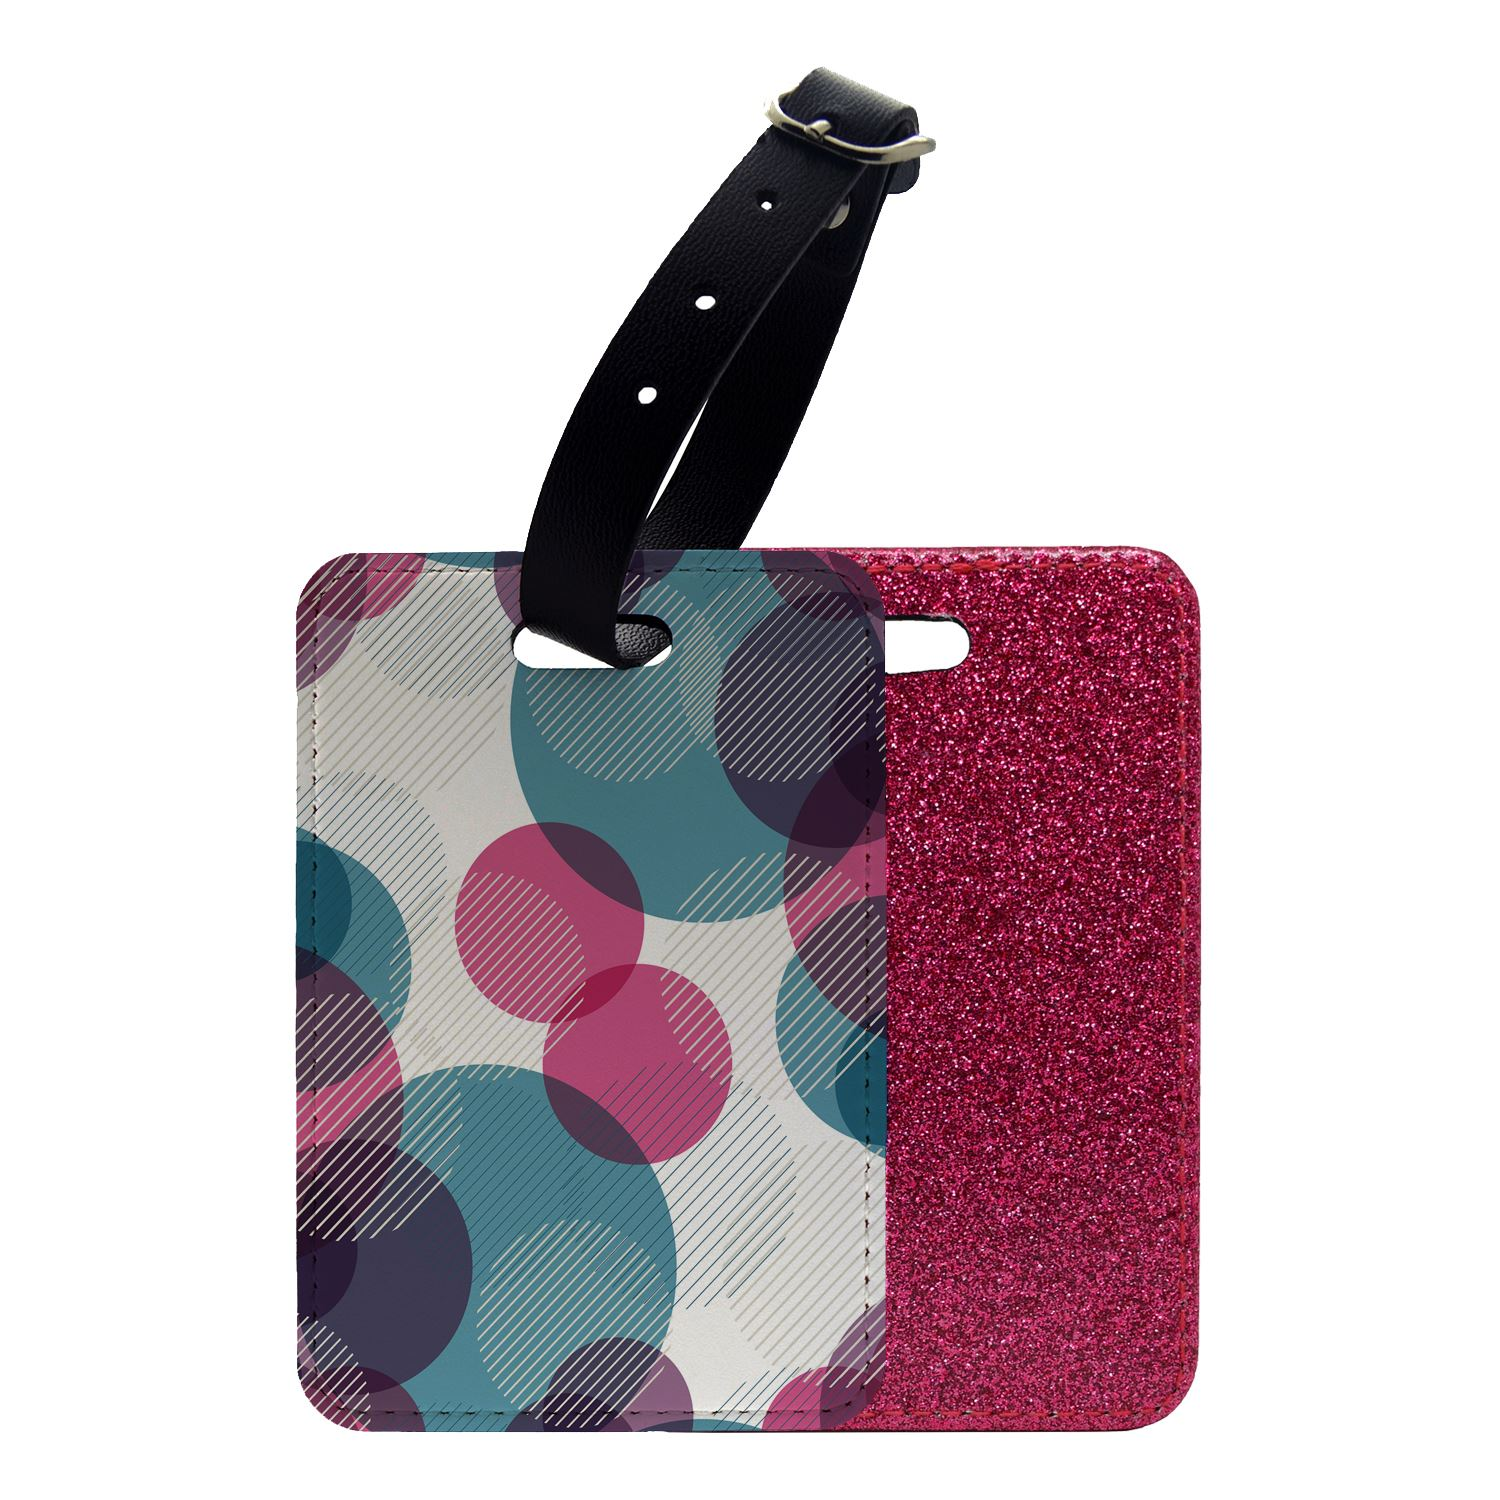 Glitter Luggage Suitcase Tag Abstract Geometric Pattern S4873